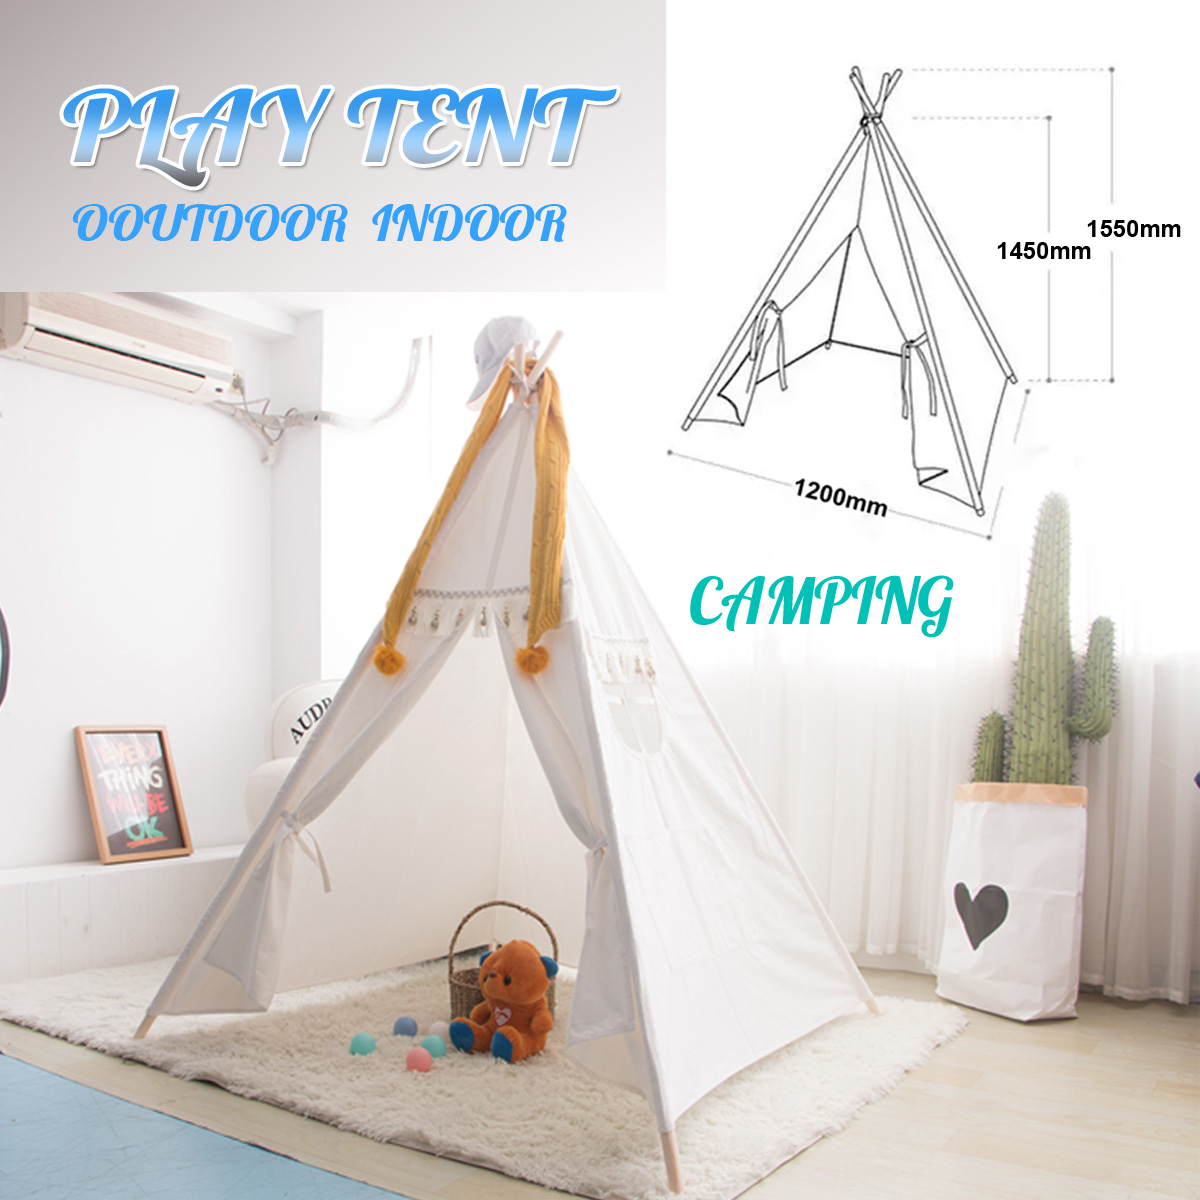 Indian Pet Tent Game House cCotton Indoor Toy House 4 Poles Kids Tent Babys Private Domain Cotton material 120x120x145cm